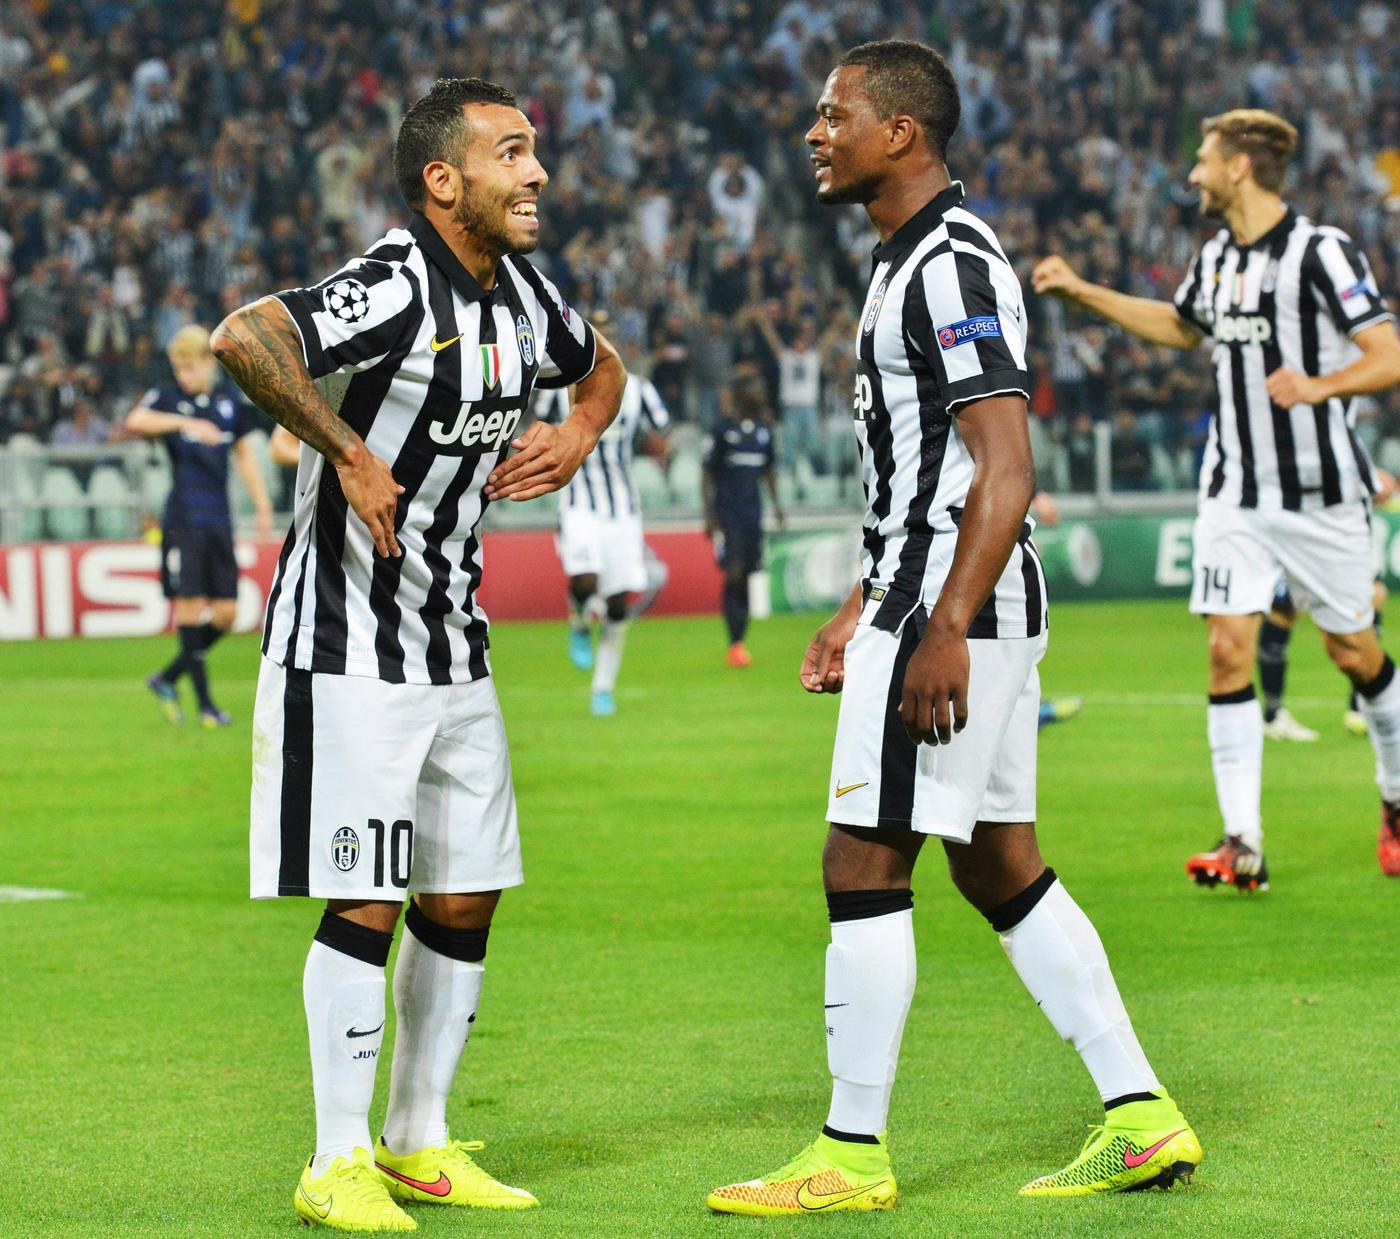 Patrice Evra says Juventus' win over Real Madrid is down to his and Carlos Tevez's 'Manchester United blood'